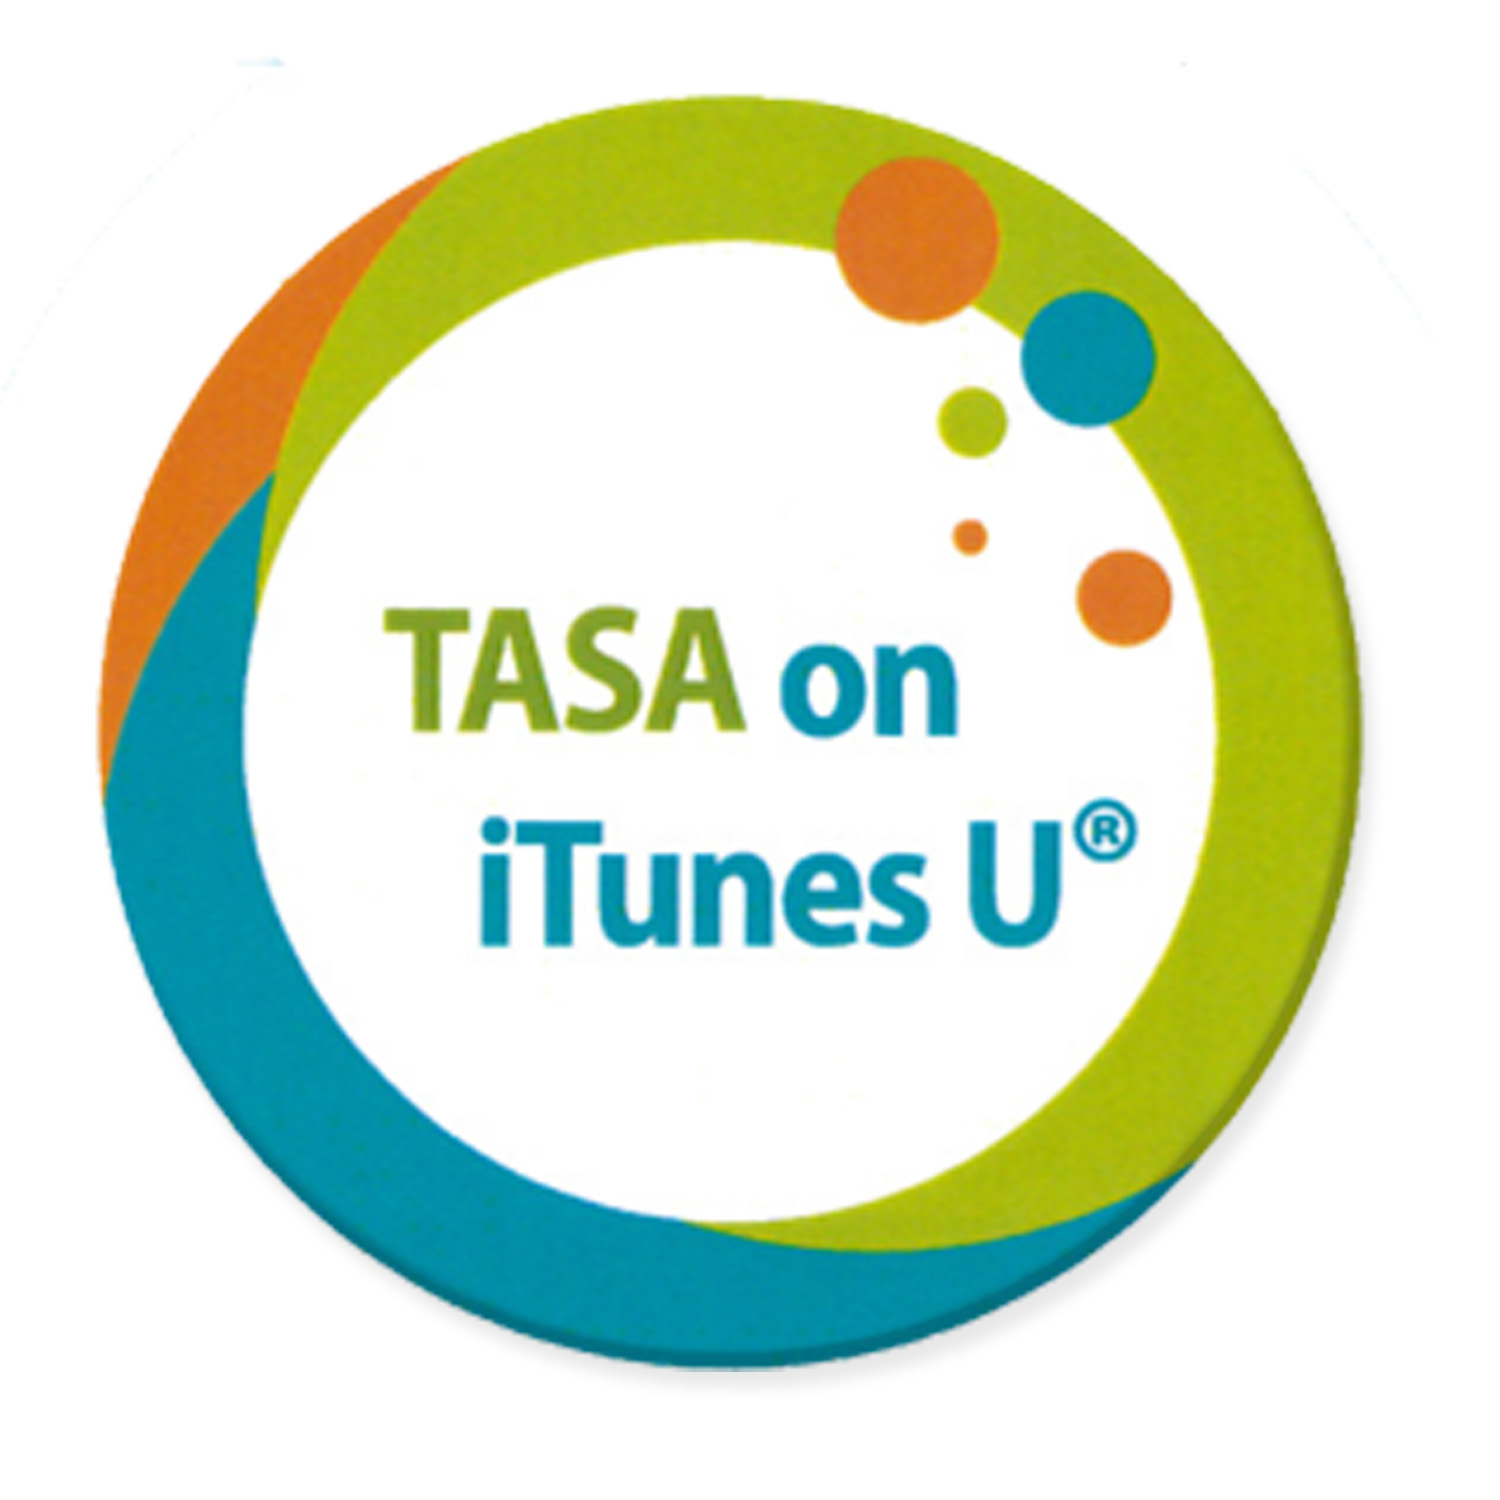 HCISD helps develop iTunes U course content for Texas Association of School Administrators project